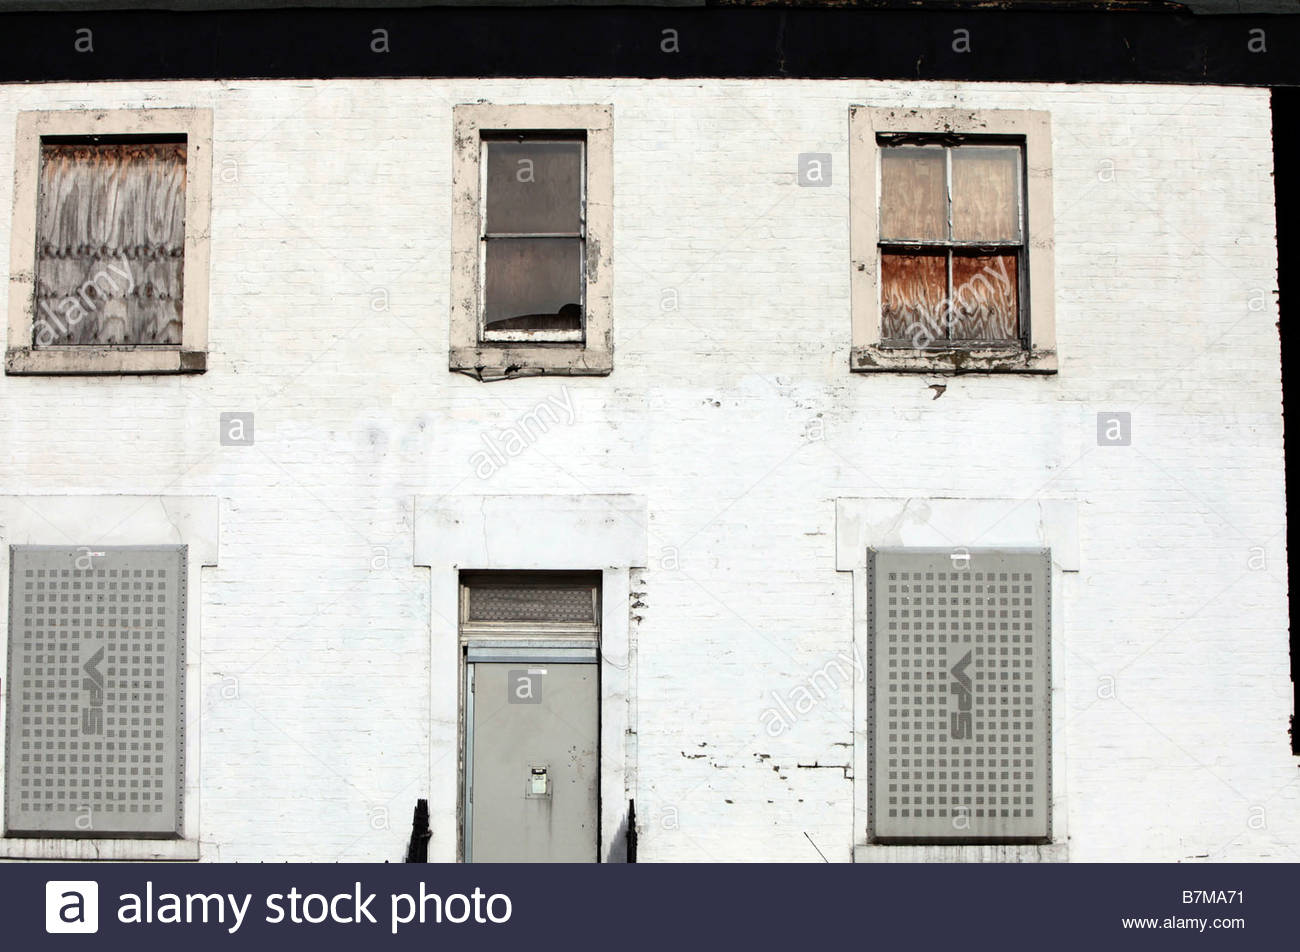 Derelict building North London England - Stock Image